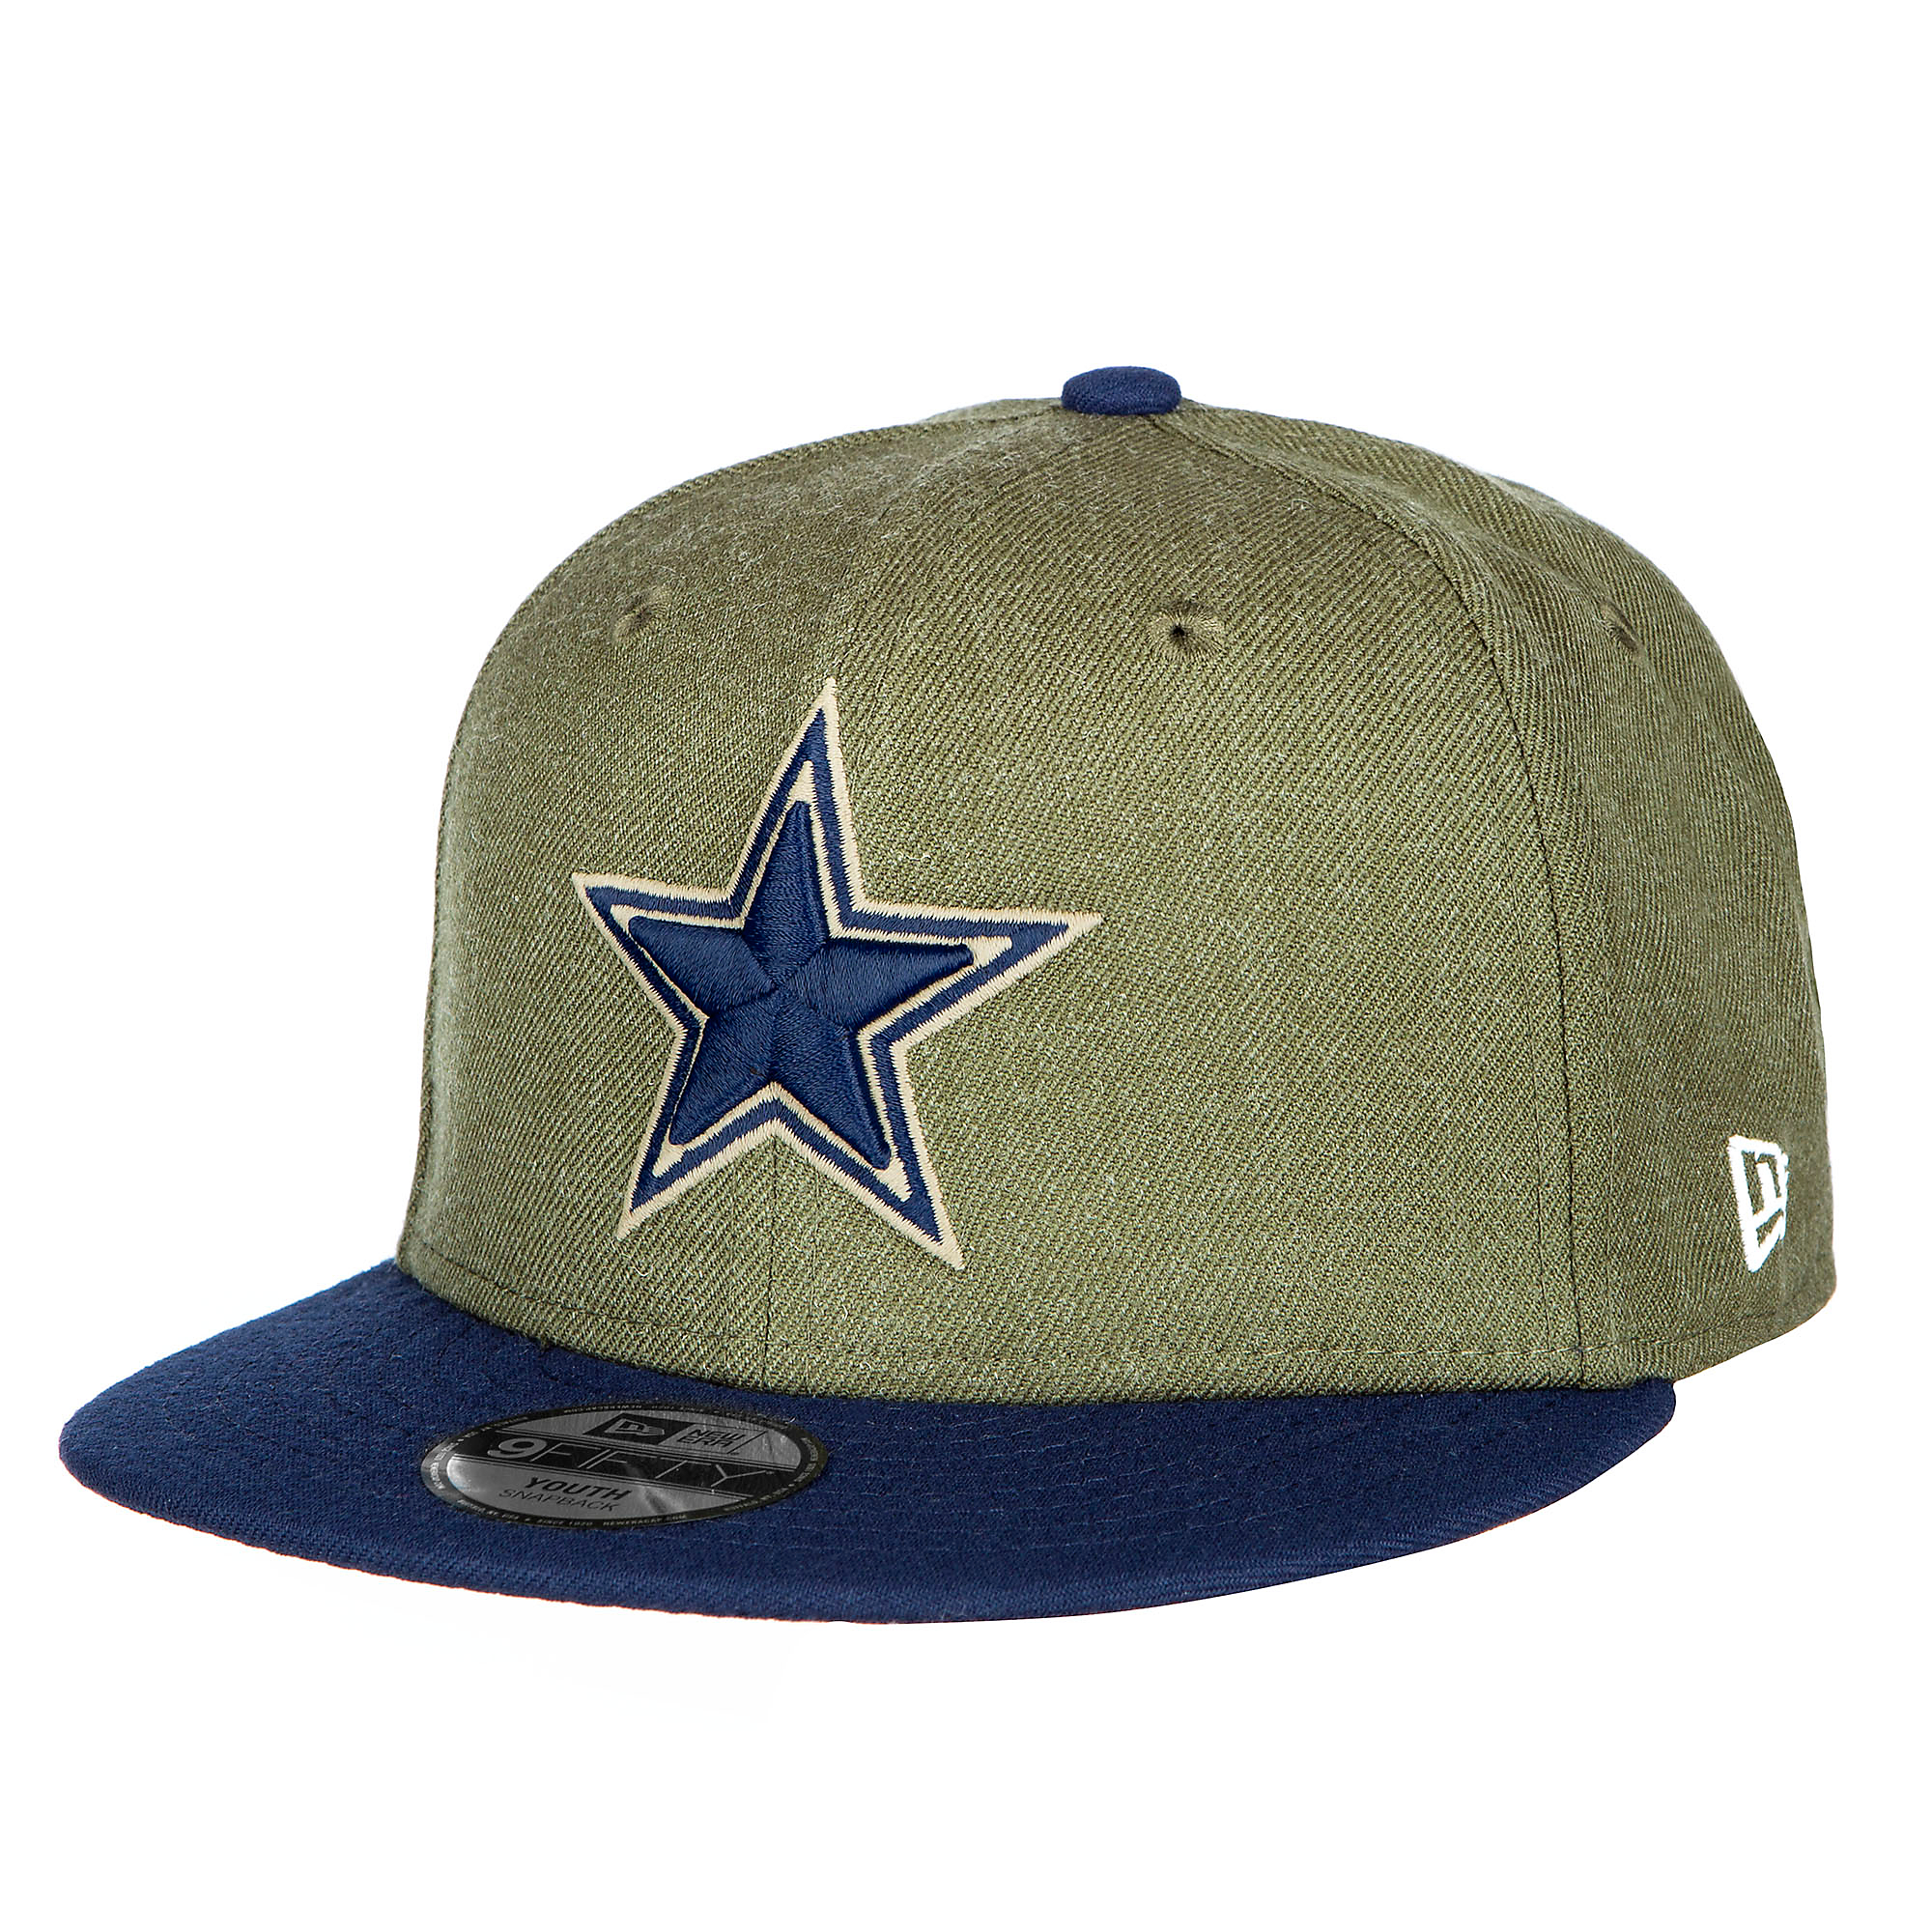 separation shoes 67b50 343c9 Dallas Cowboys New Era Salute to Service Youth 9Fifty Cap